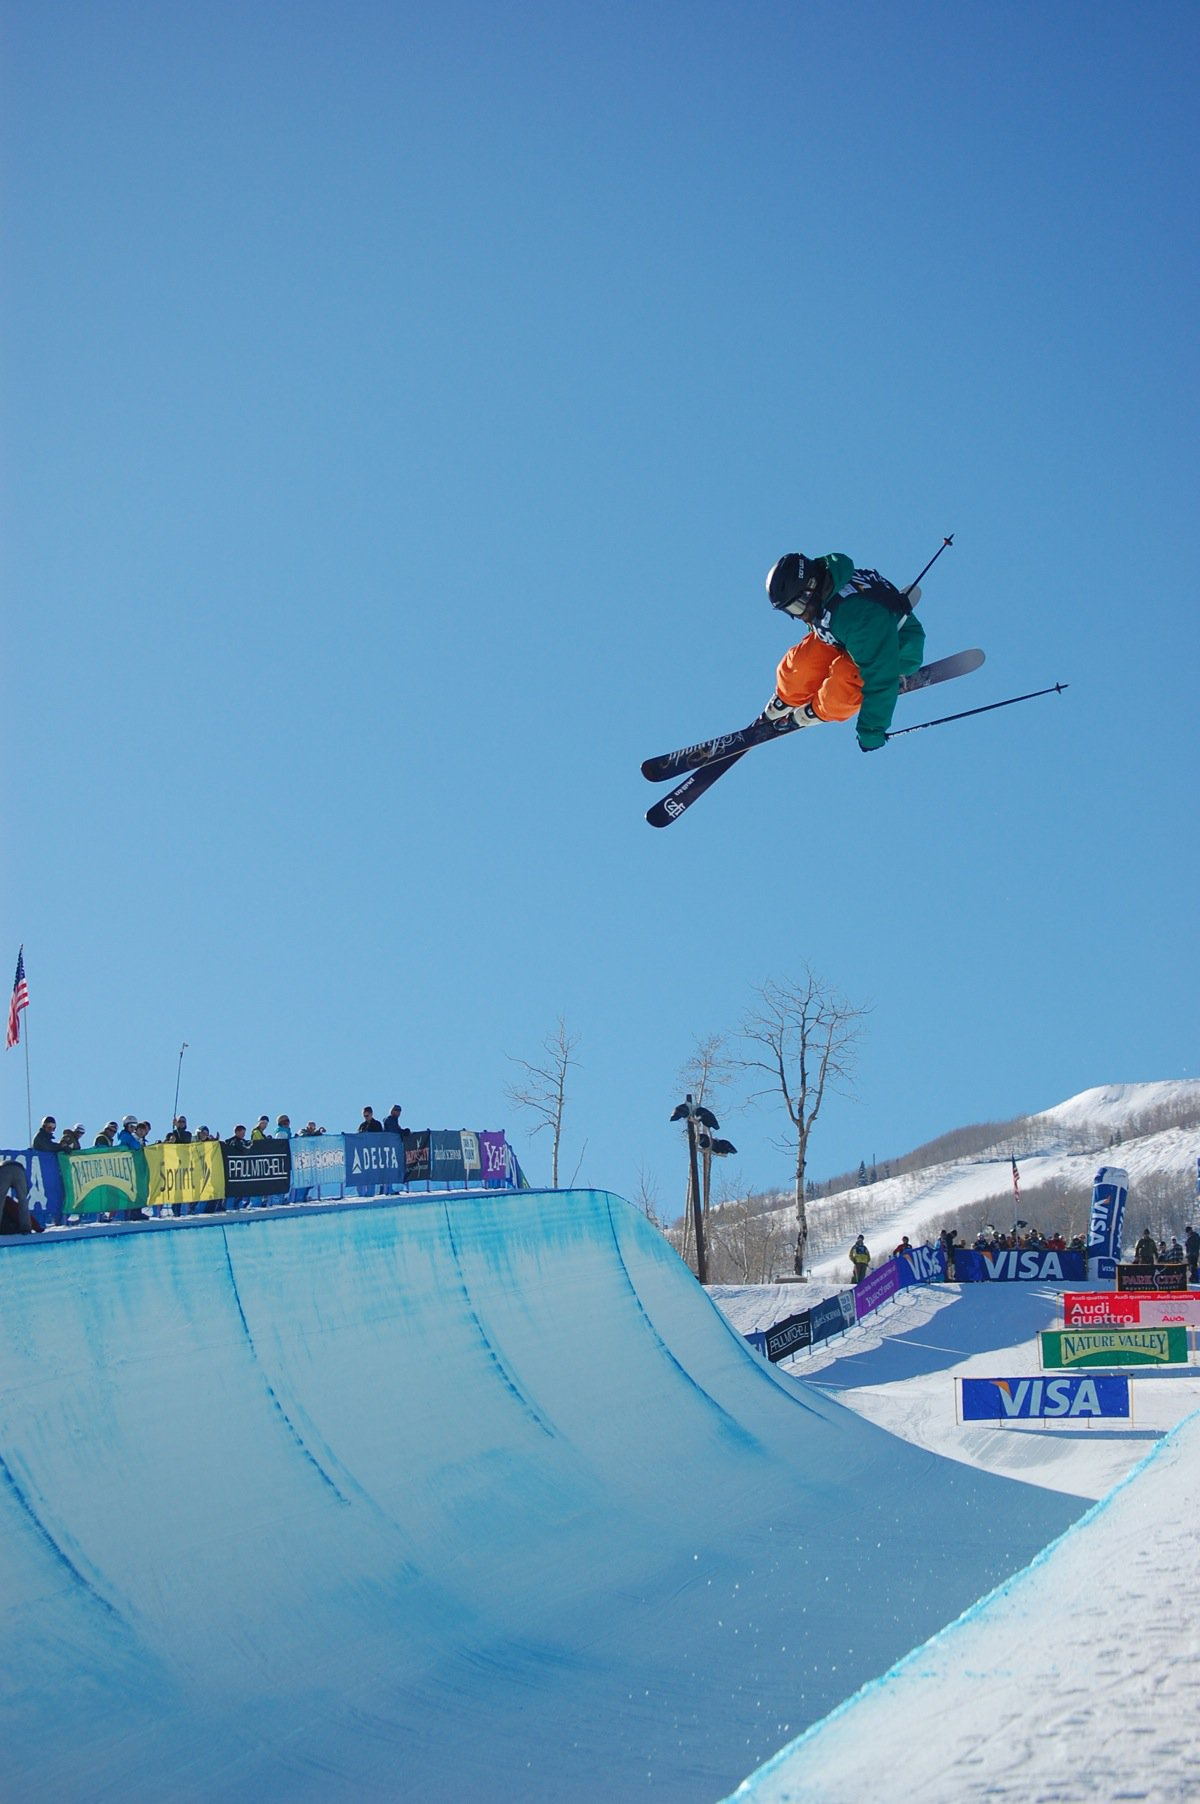 Taylor seaton pc world cup